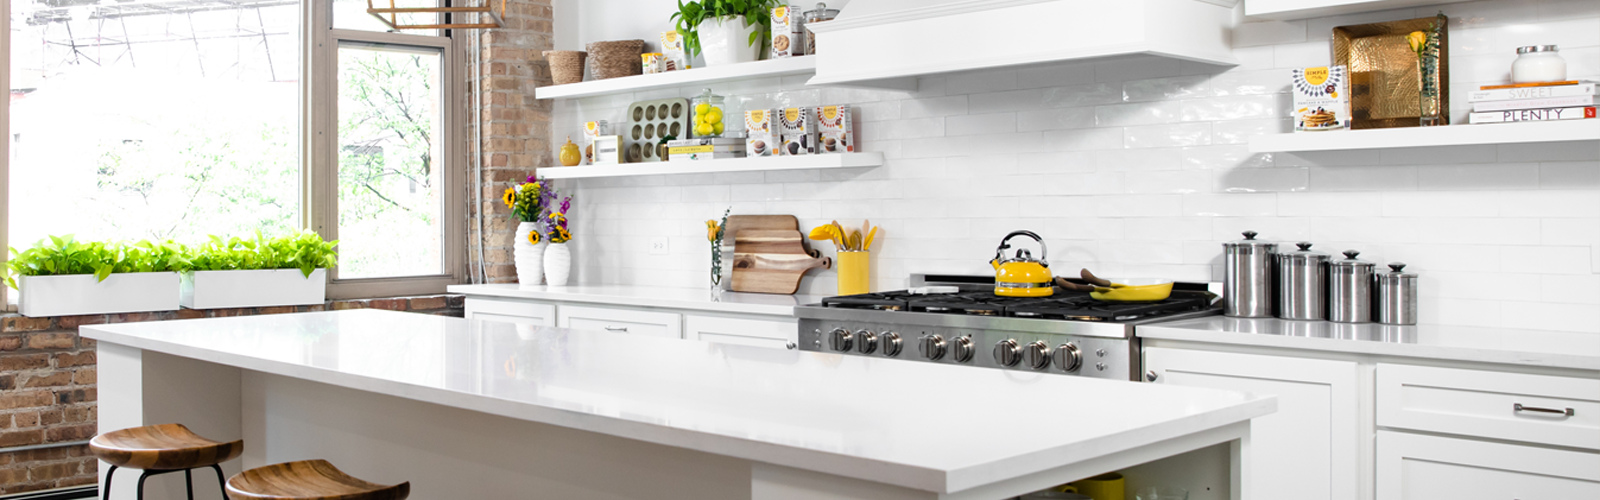 All white bright airy kitchen with yellow accents and Simple Mills products on shelves